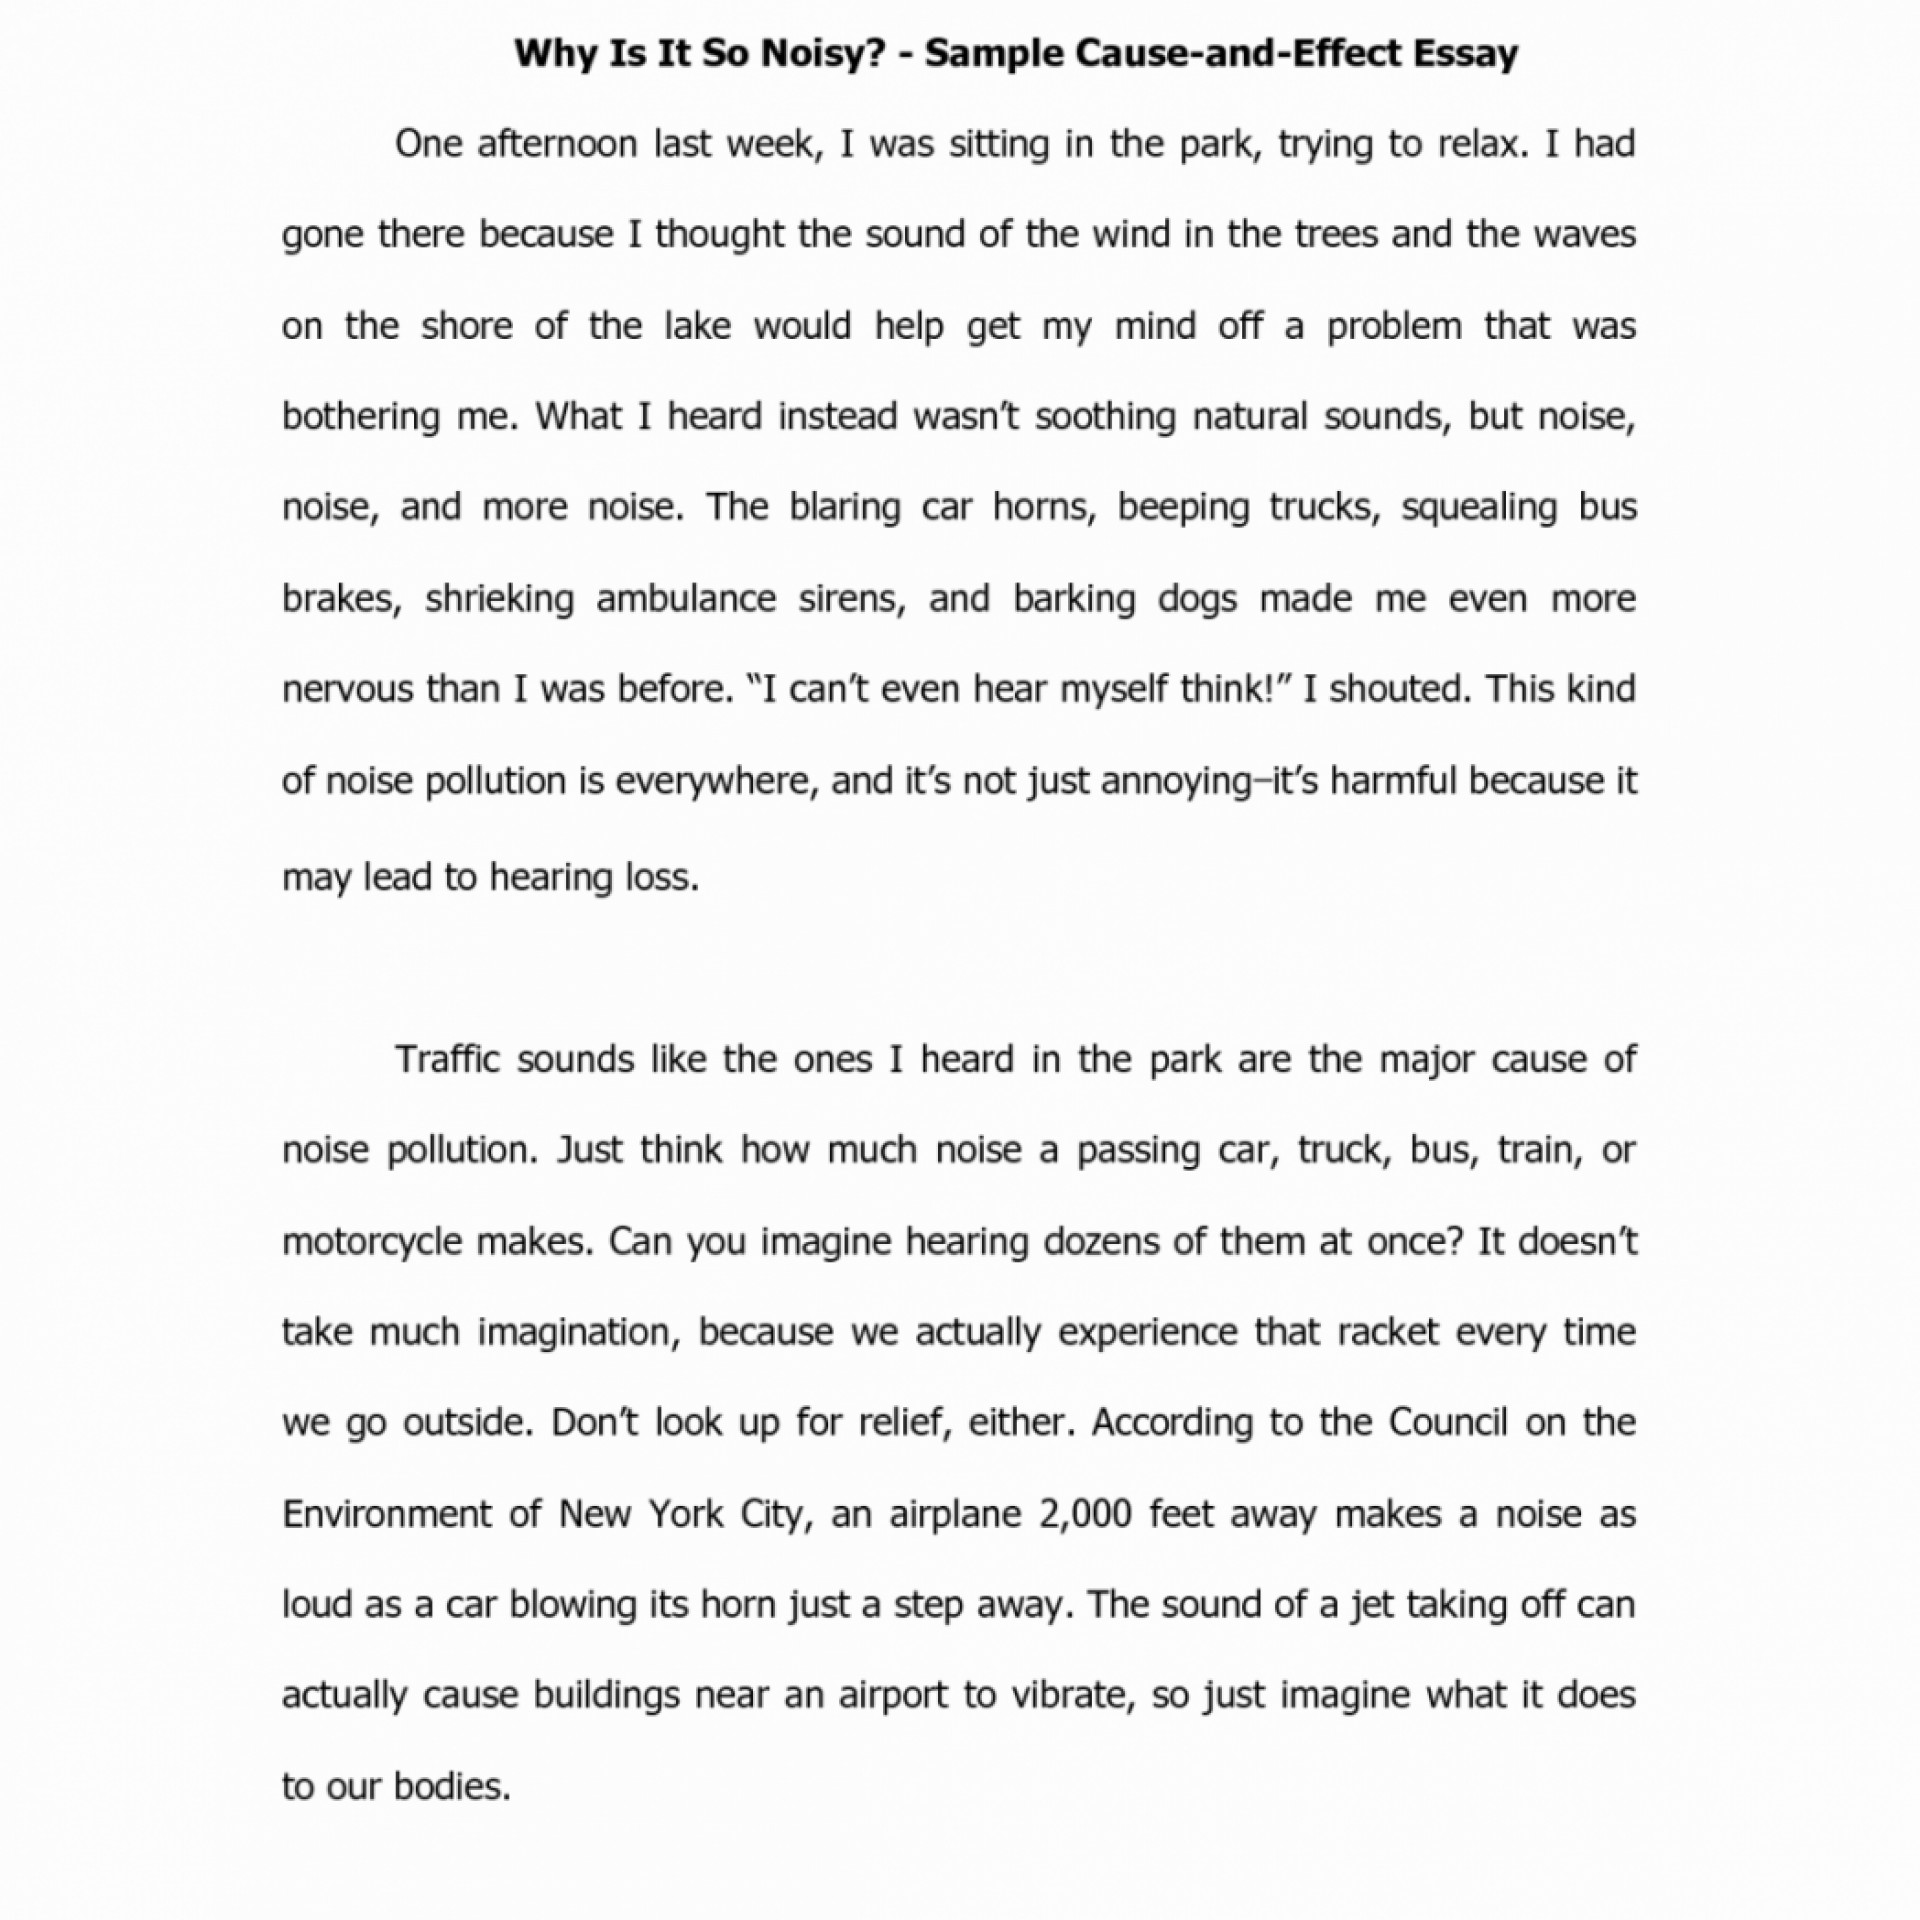 027 Cause And Effect Essays Format Best Of For Or Good Cover Bystander Domino Analysis Ielts Free 6th Grade College Pdf Middle School 1048x1048 Amazing Essay Examples On Stress 1920